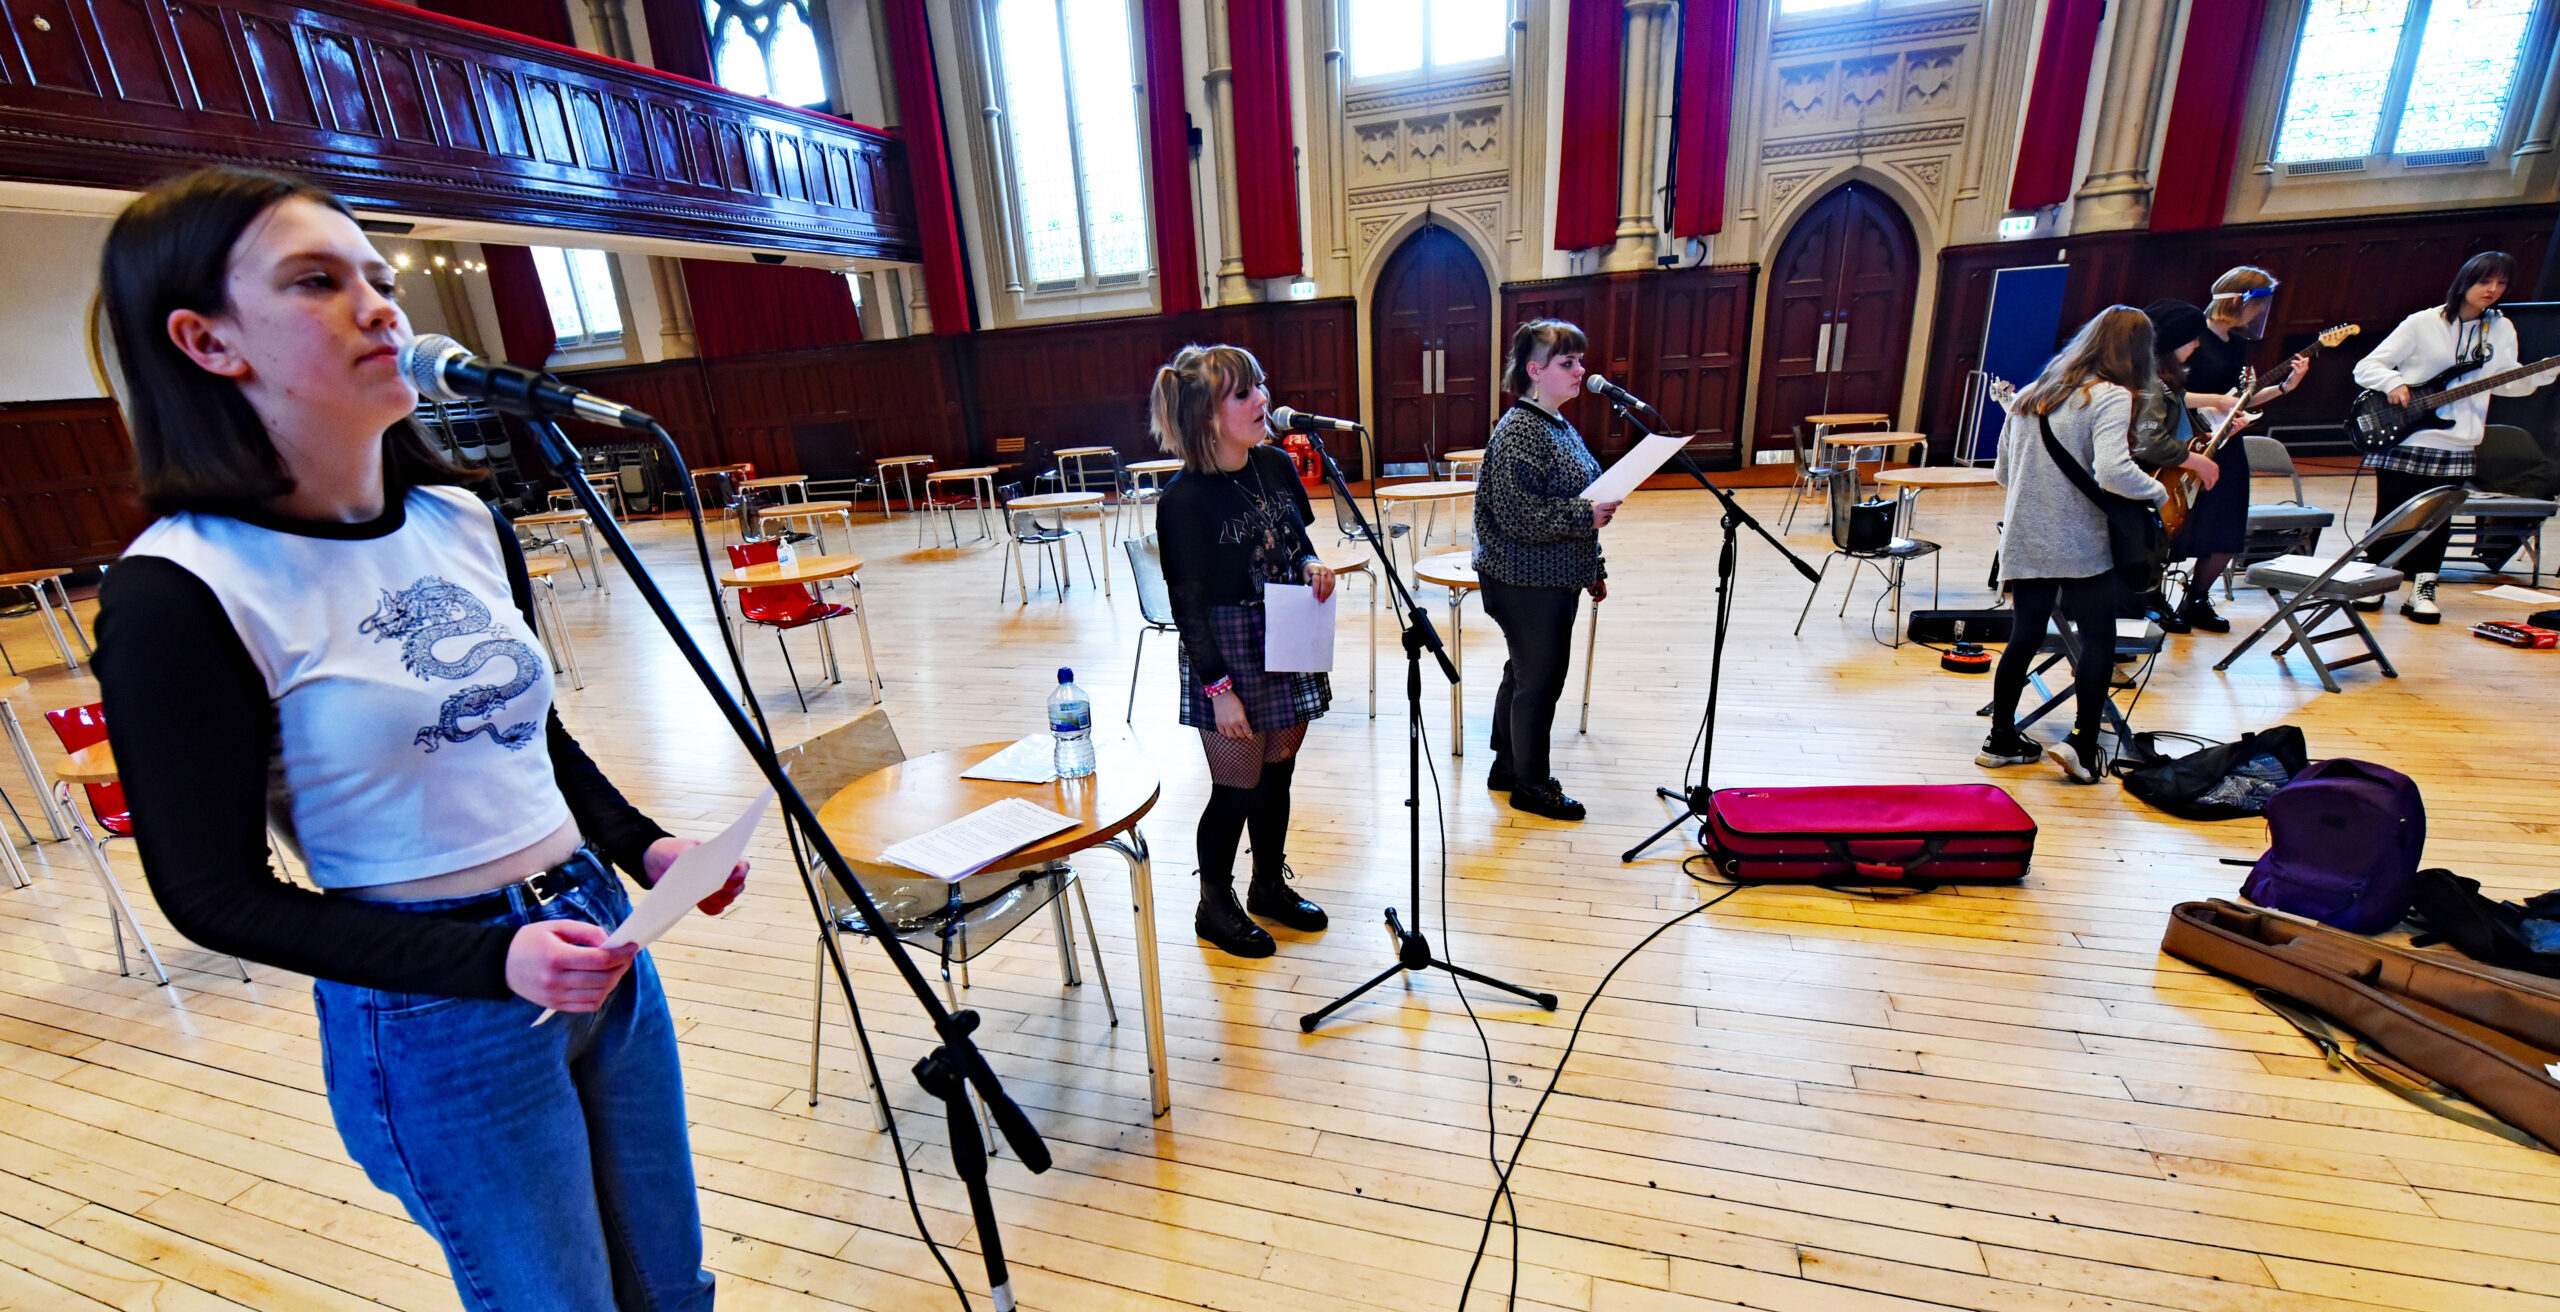 3 young people standing with mic stands in front of them in the main hall of Middlesbrough Town Hall